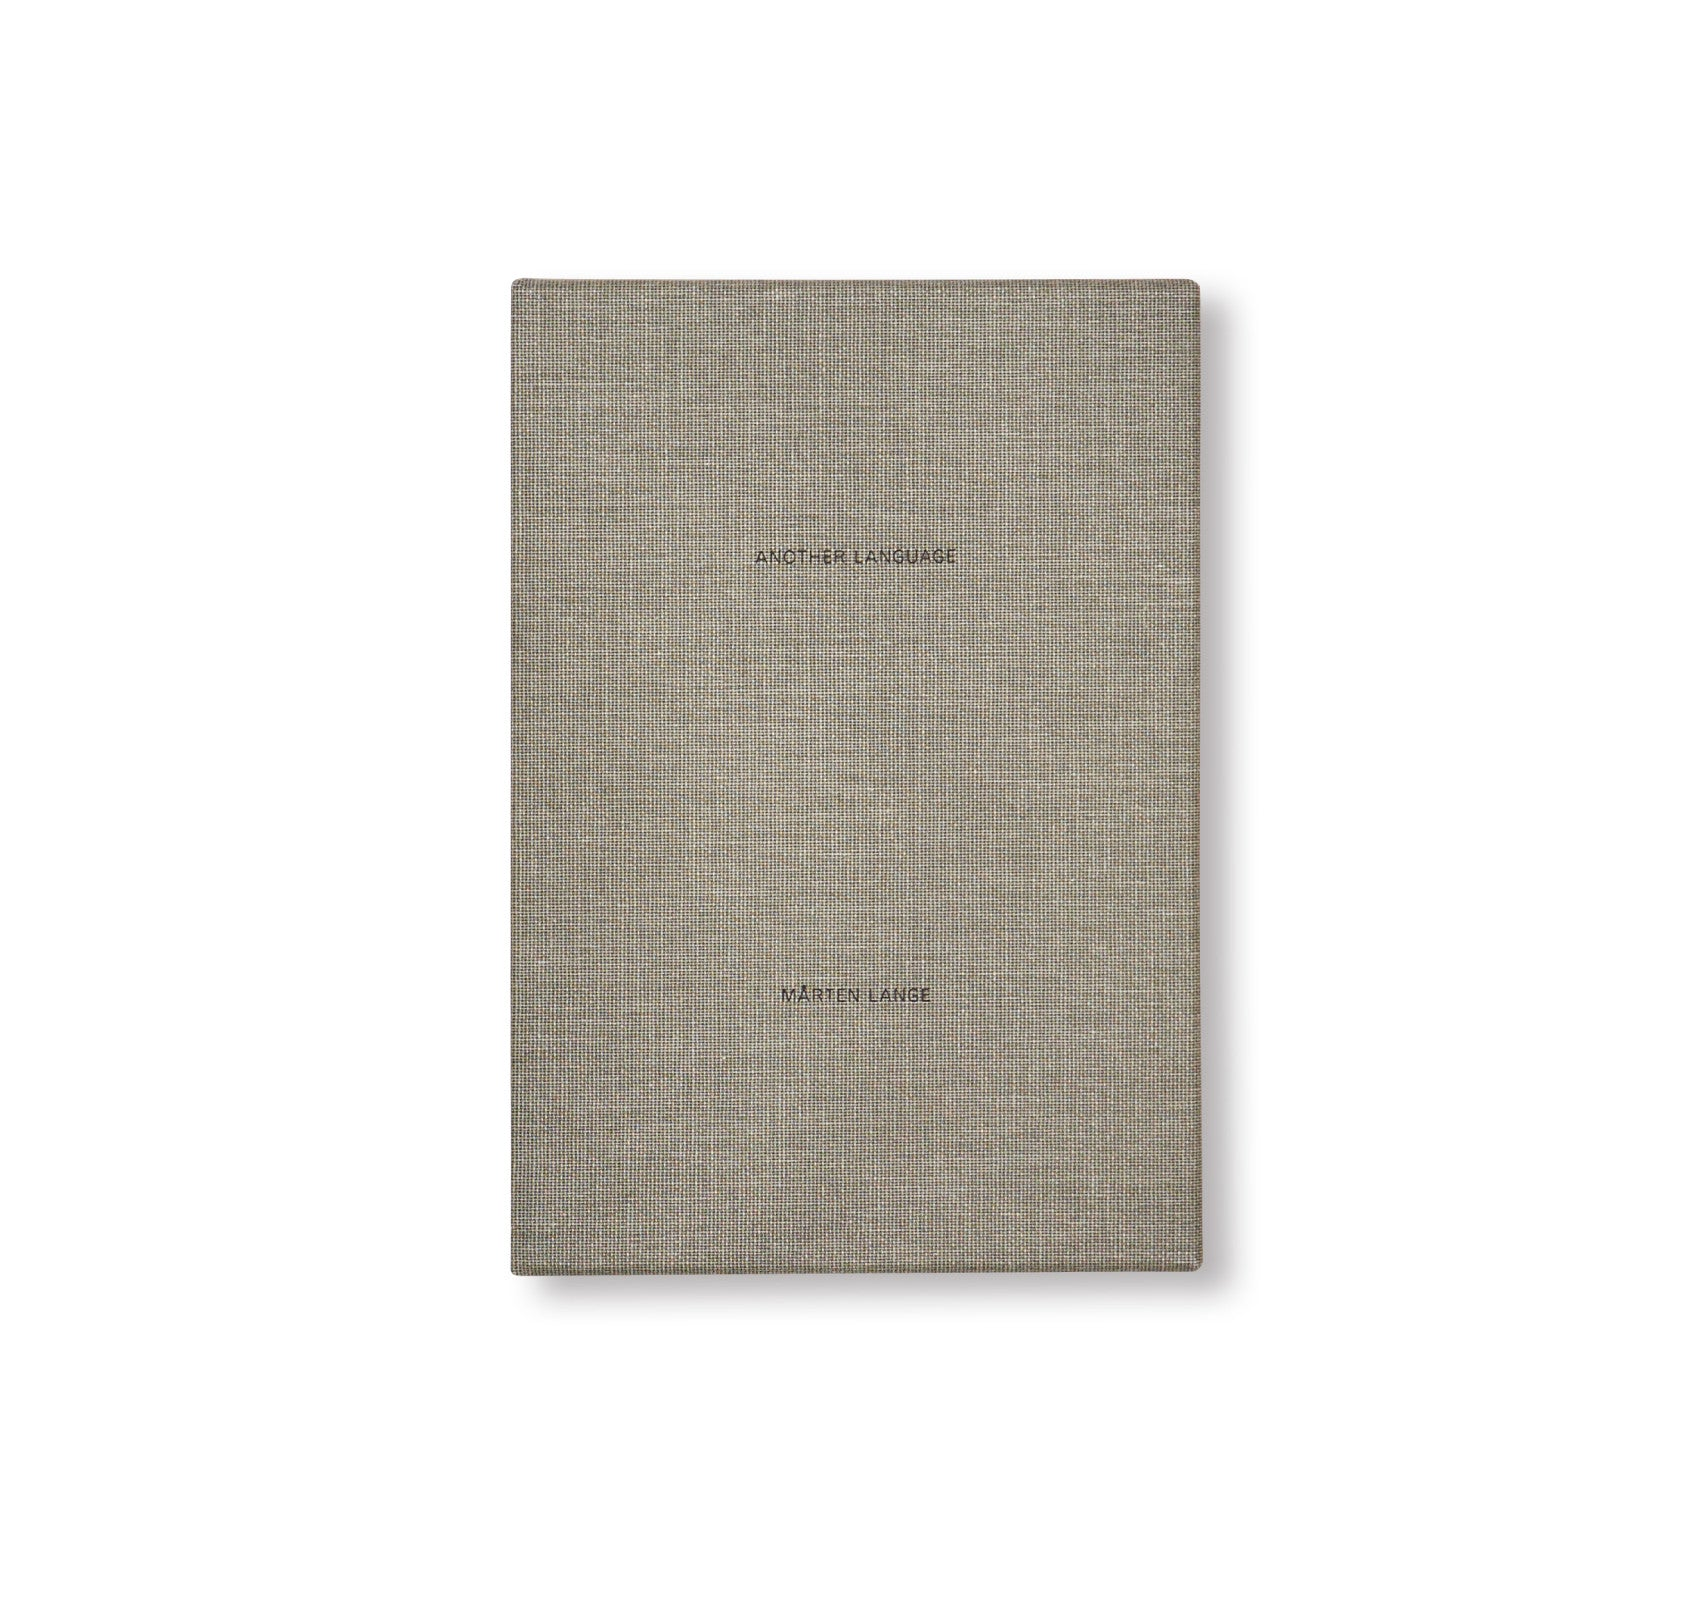 ANOTHER LANGUAGE by Mårten Lange [SPECIAL EDITION / SIGNED]